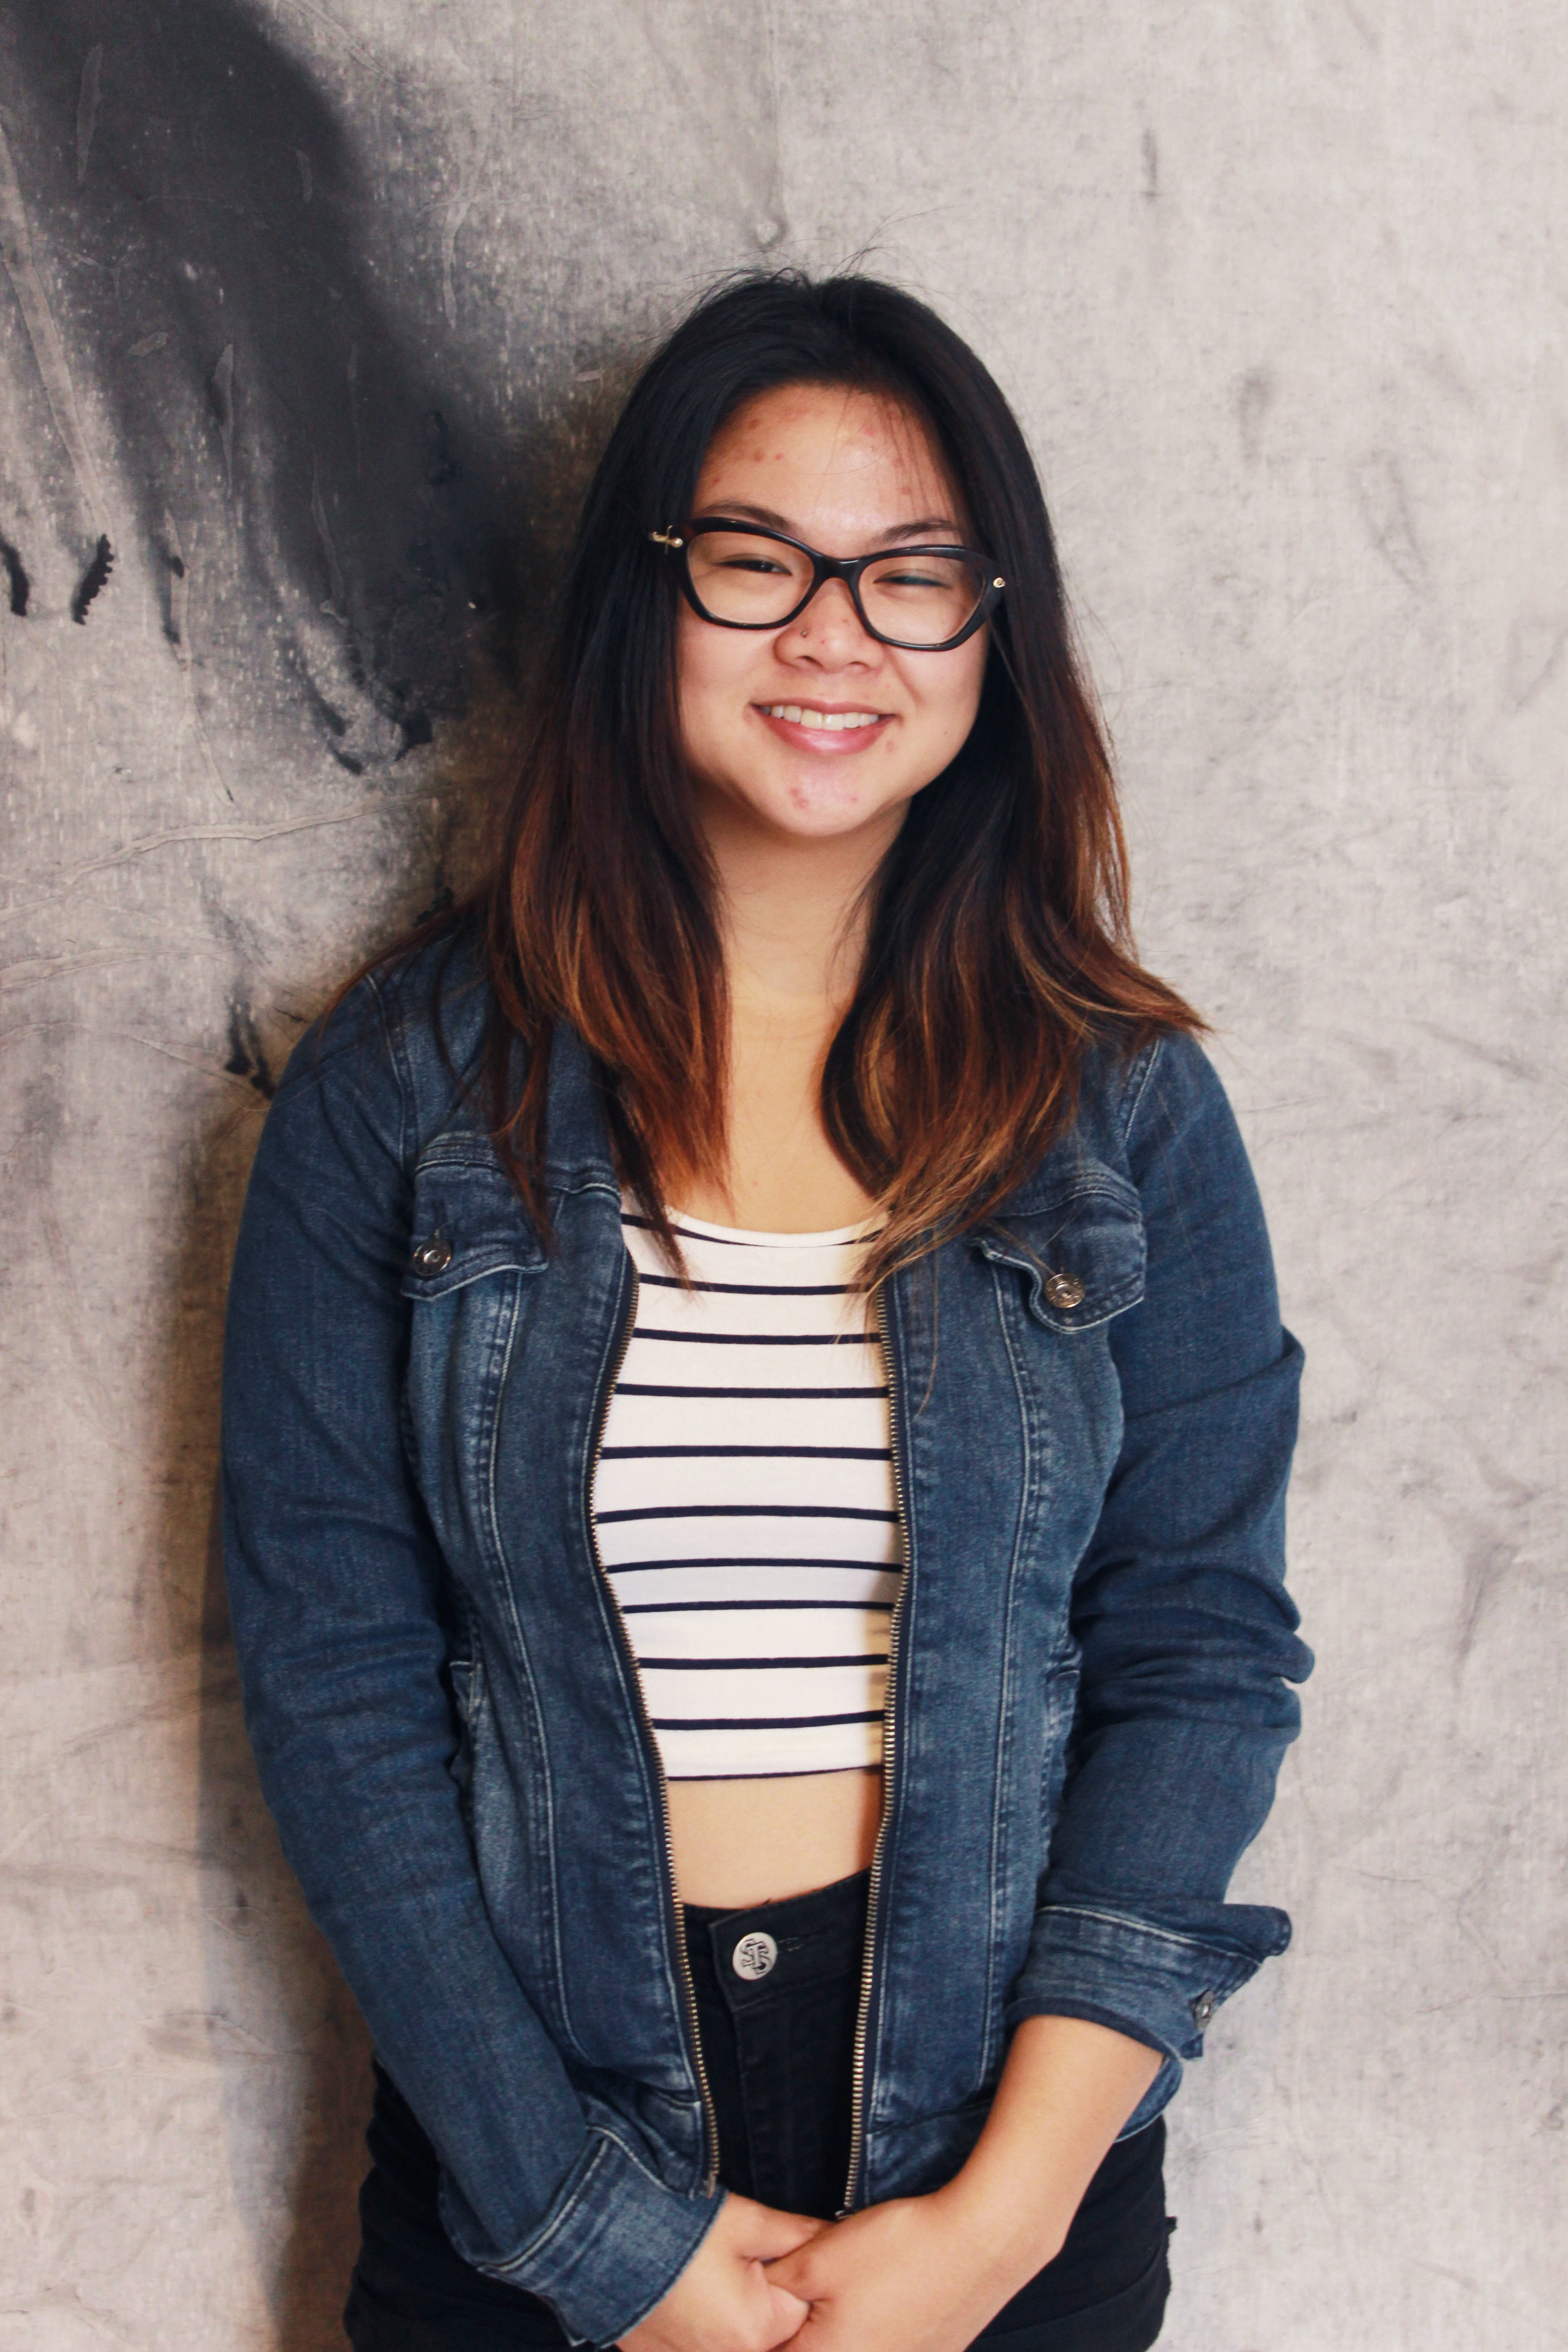 Hi there! My name is Caitlyn Dang, but I go by Cat. I am diagnosed with Bipolar 2 Disorder, and my life has been whirlwind of manic-depressive events that have finally sculpted the person I am today. I feel like having a clinical mood disorder has really influenced my perception of societal topics and current events, and I will use my knowledge and passion to help fuel the content I create for the Dominican Beat.